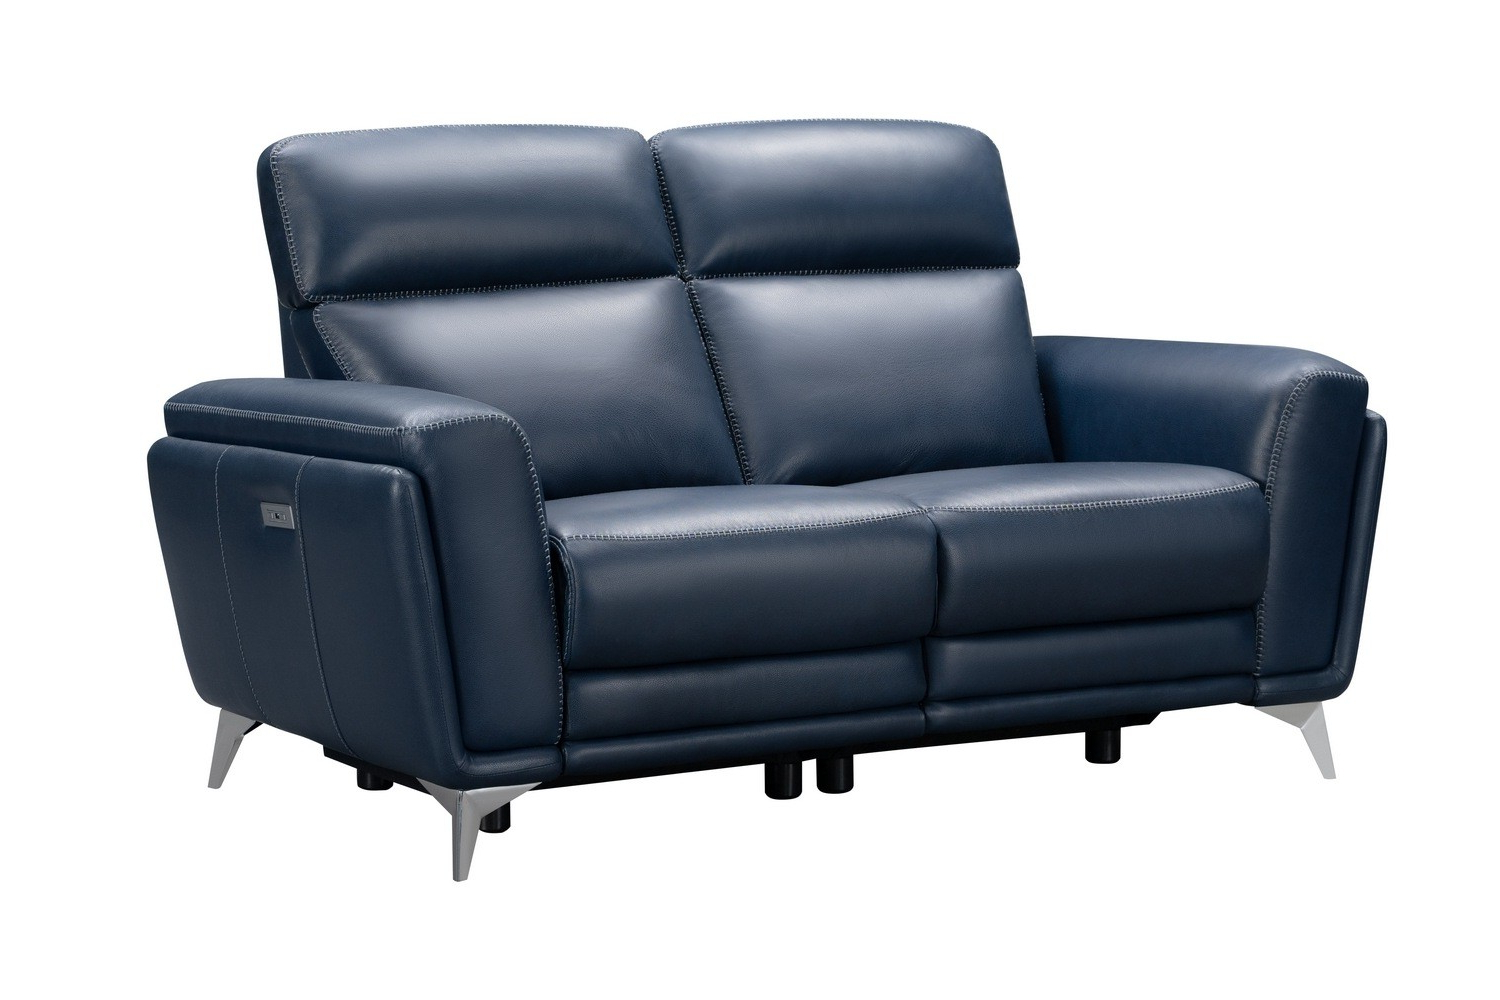 Latest Marco Leather Power Reclining Sofas With Regard To Barcalounger Cameron Power Reclining Loveseat With Power (View 2 of 15)